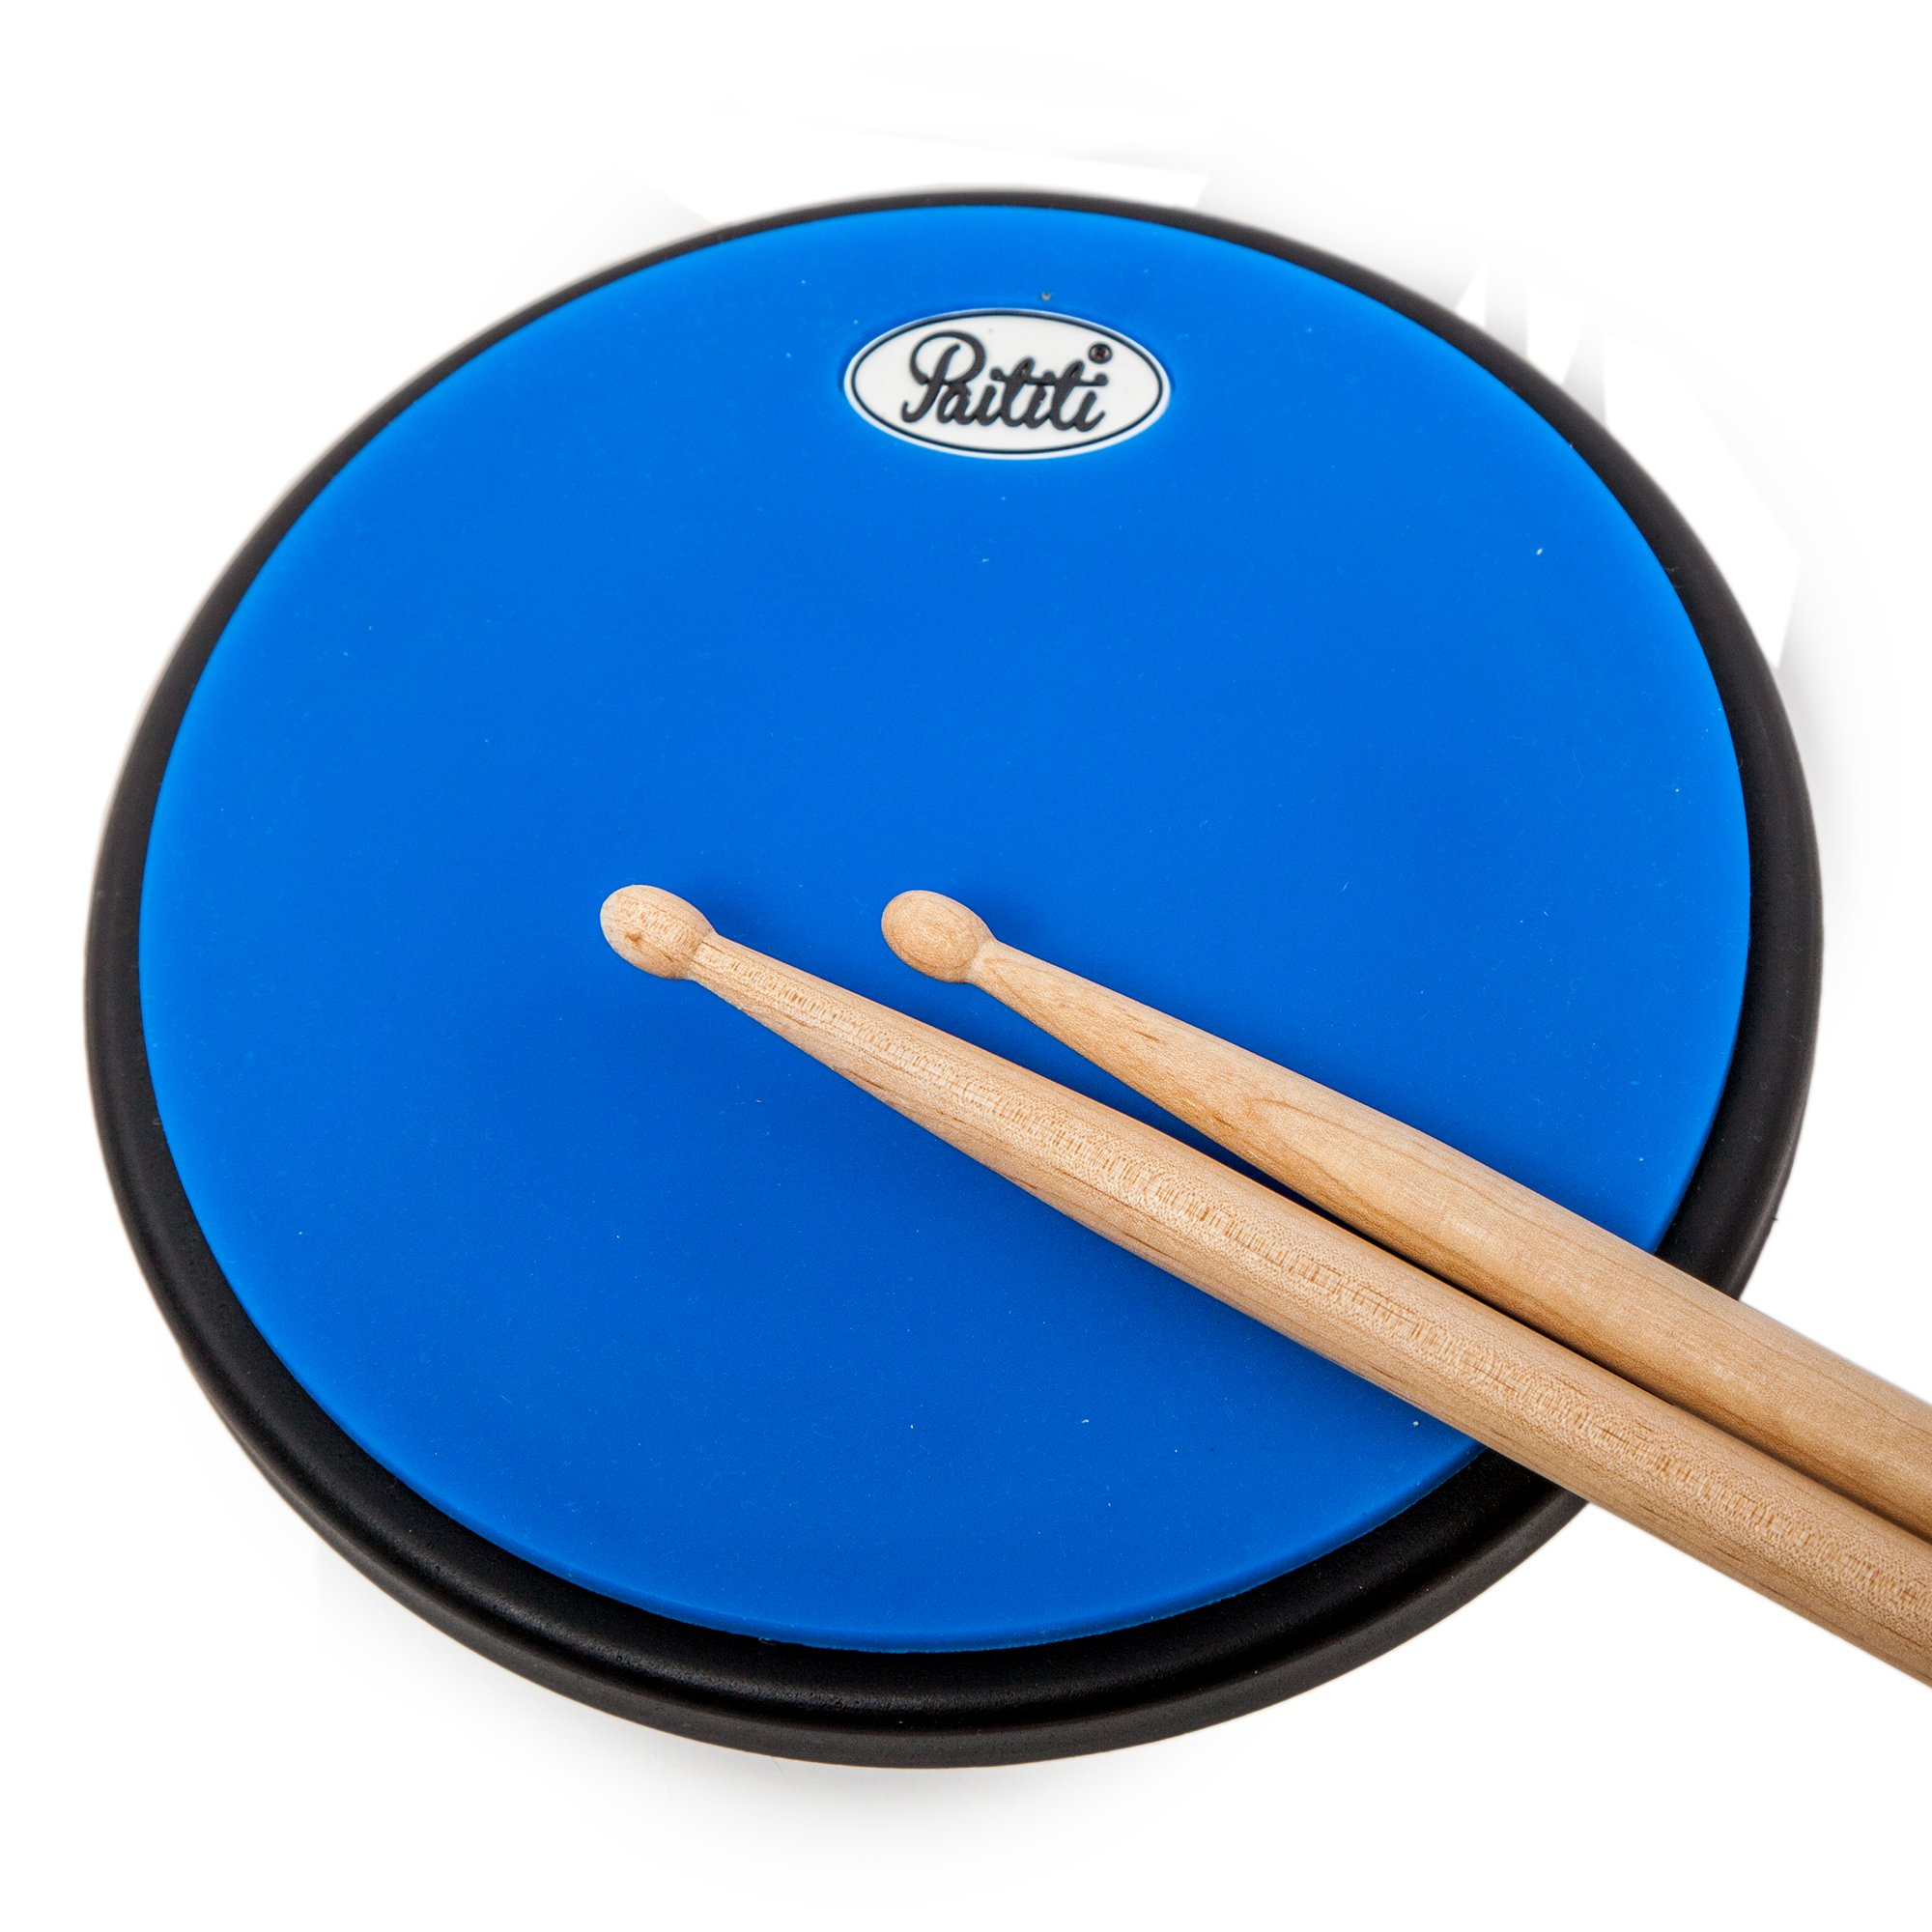 PAITITI 10 Inch Silent Portable Practice Drum Pad Round Shape with Carrying Bag Blue Color